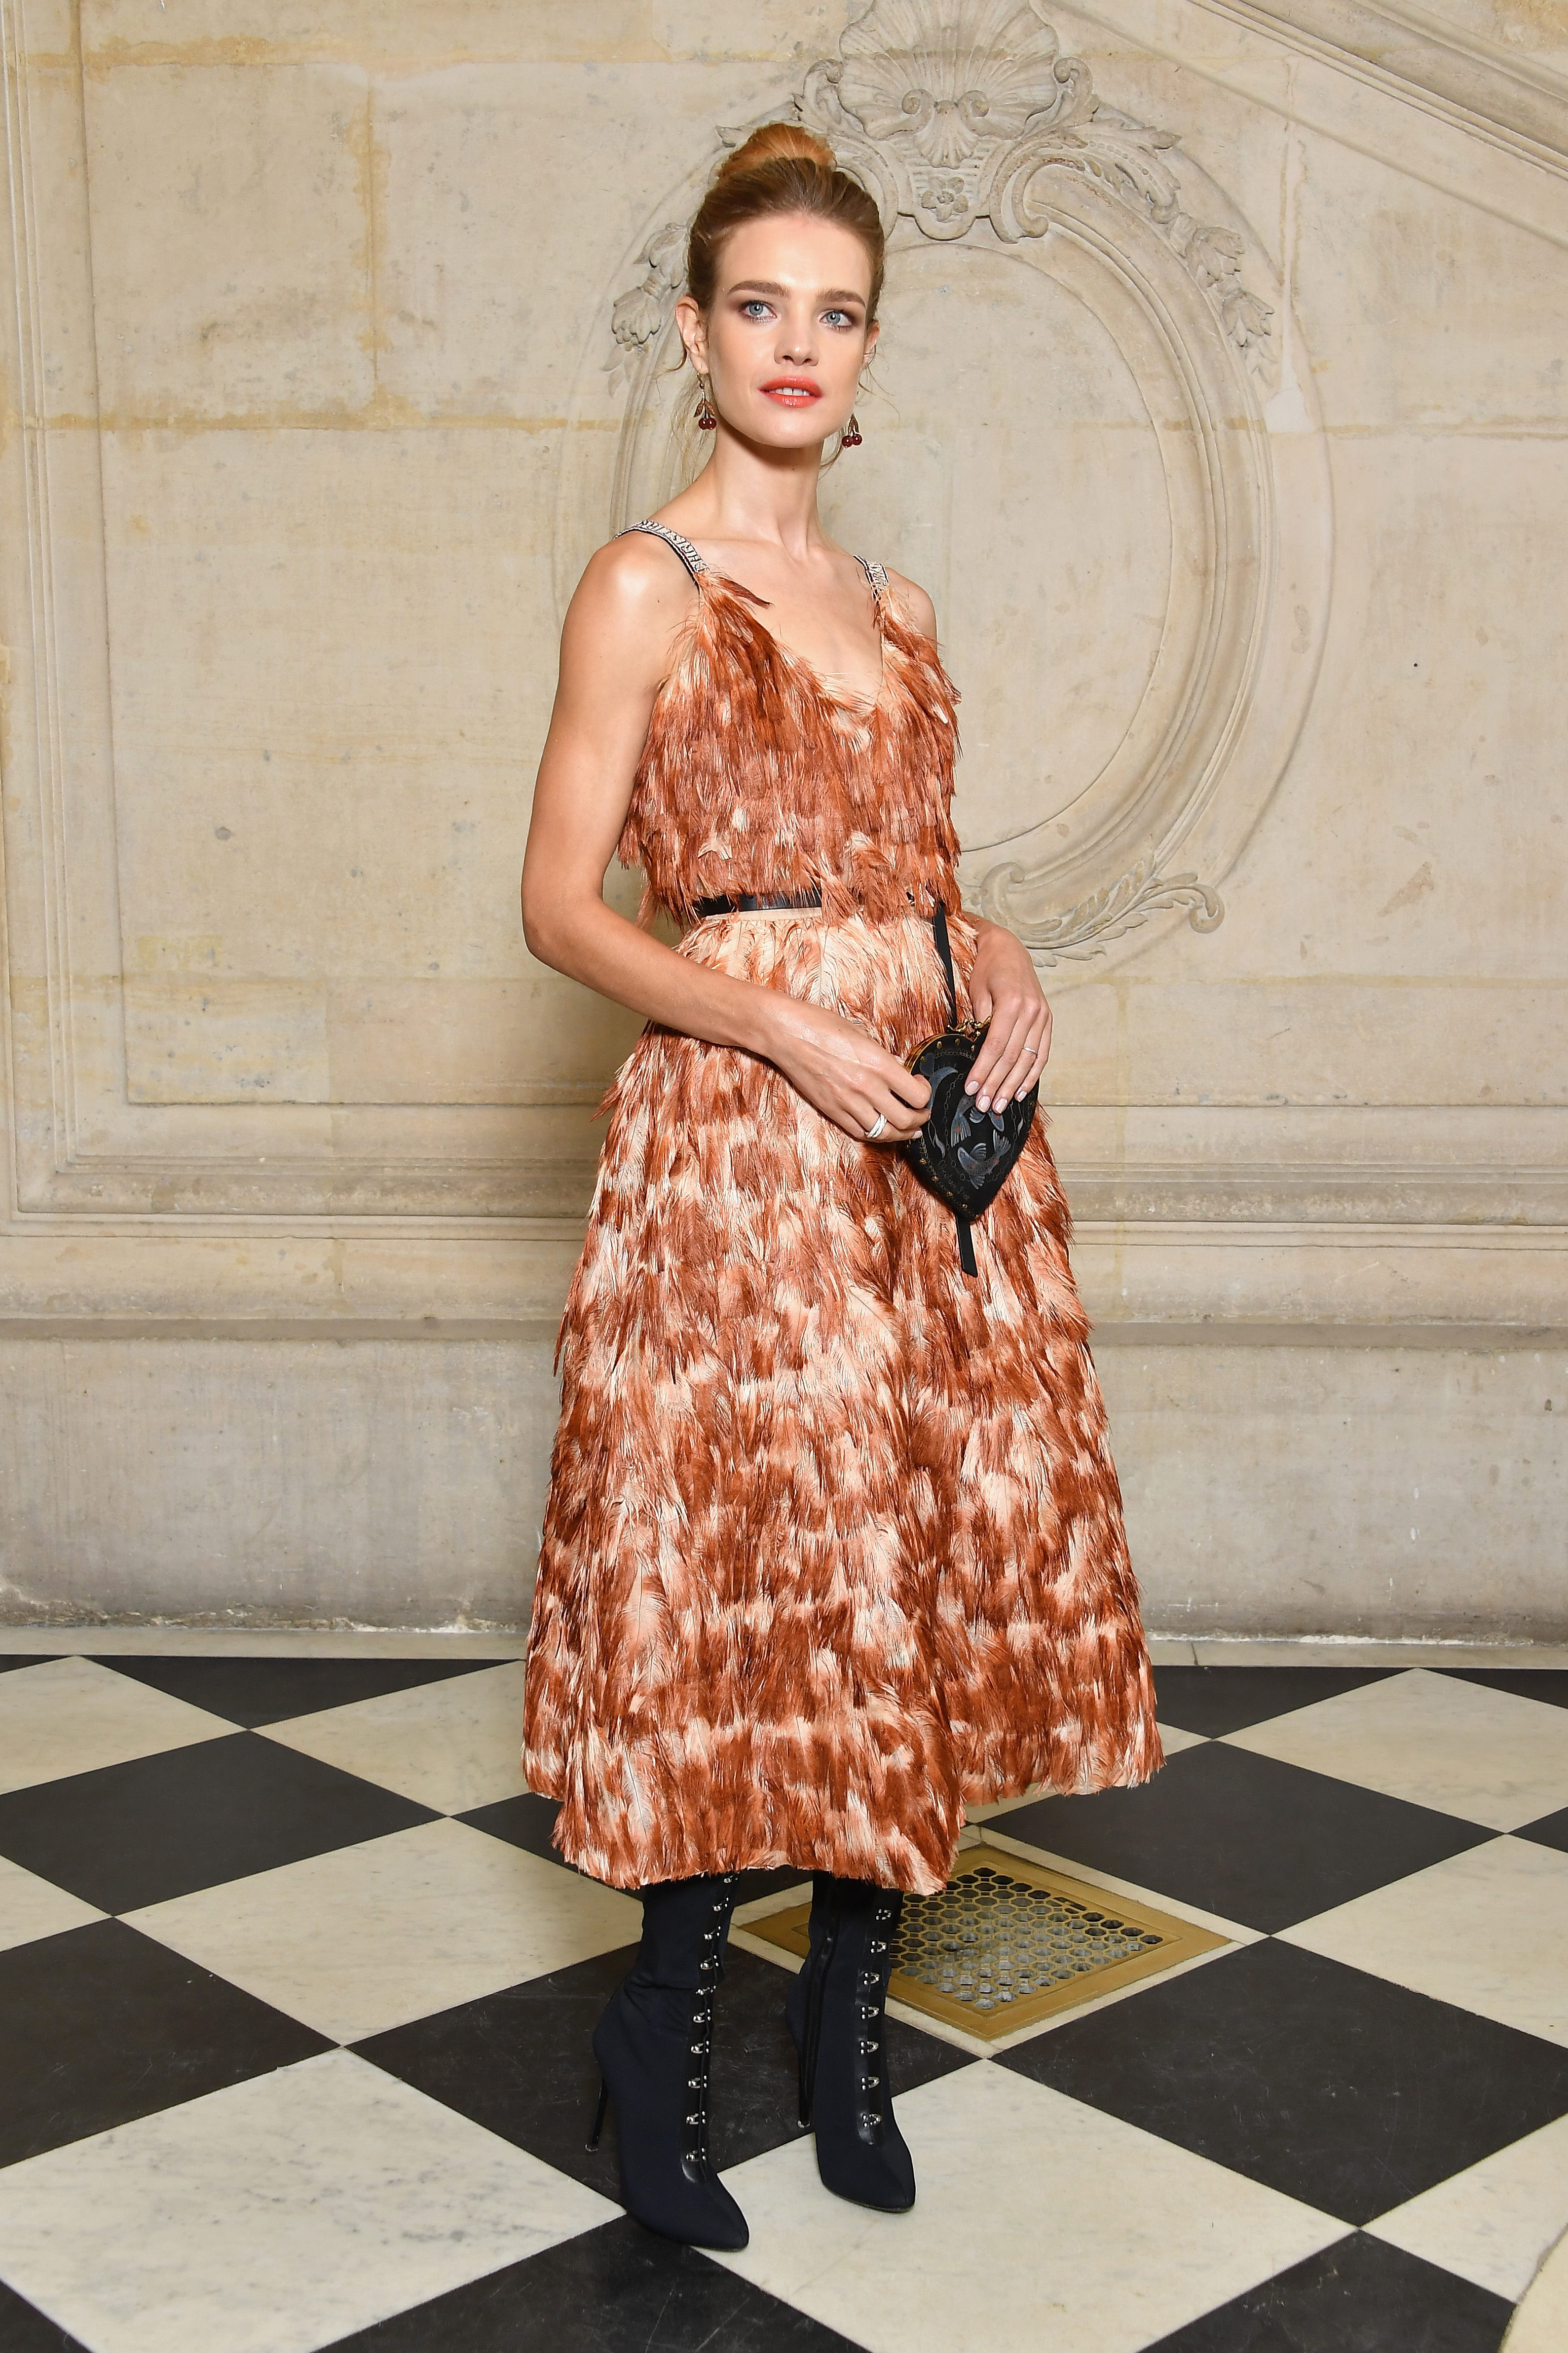 PARIS, FRANCE - SEPTEMBER 26: Natalia Vodianova attends the Christian Dior show as part of the Paris Fashion Week Womenswear Spring/Summer 2018 on September 26, 2017 in Paris, France. (Photo by Pascal Le Segretain/Getty Images for Dior) *** Local Caption *** Natalia Vodianova